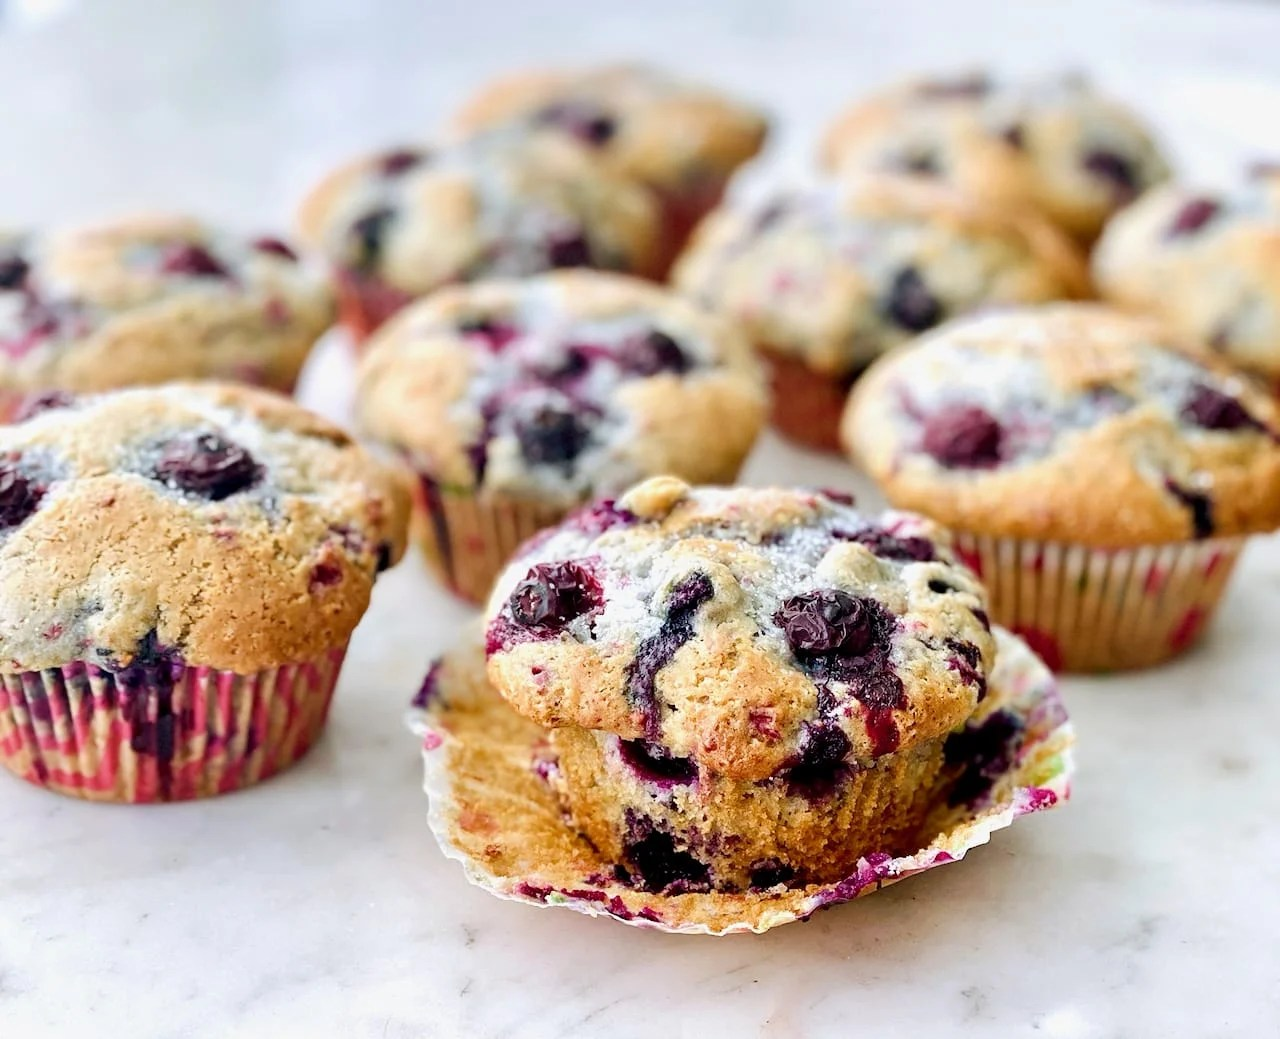 blueberry muffins with one liner pulled down to see the muffin